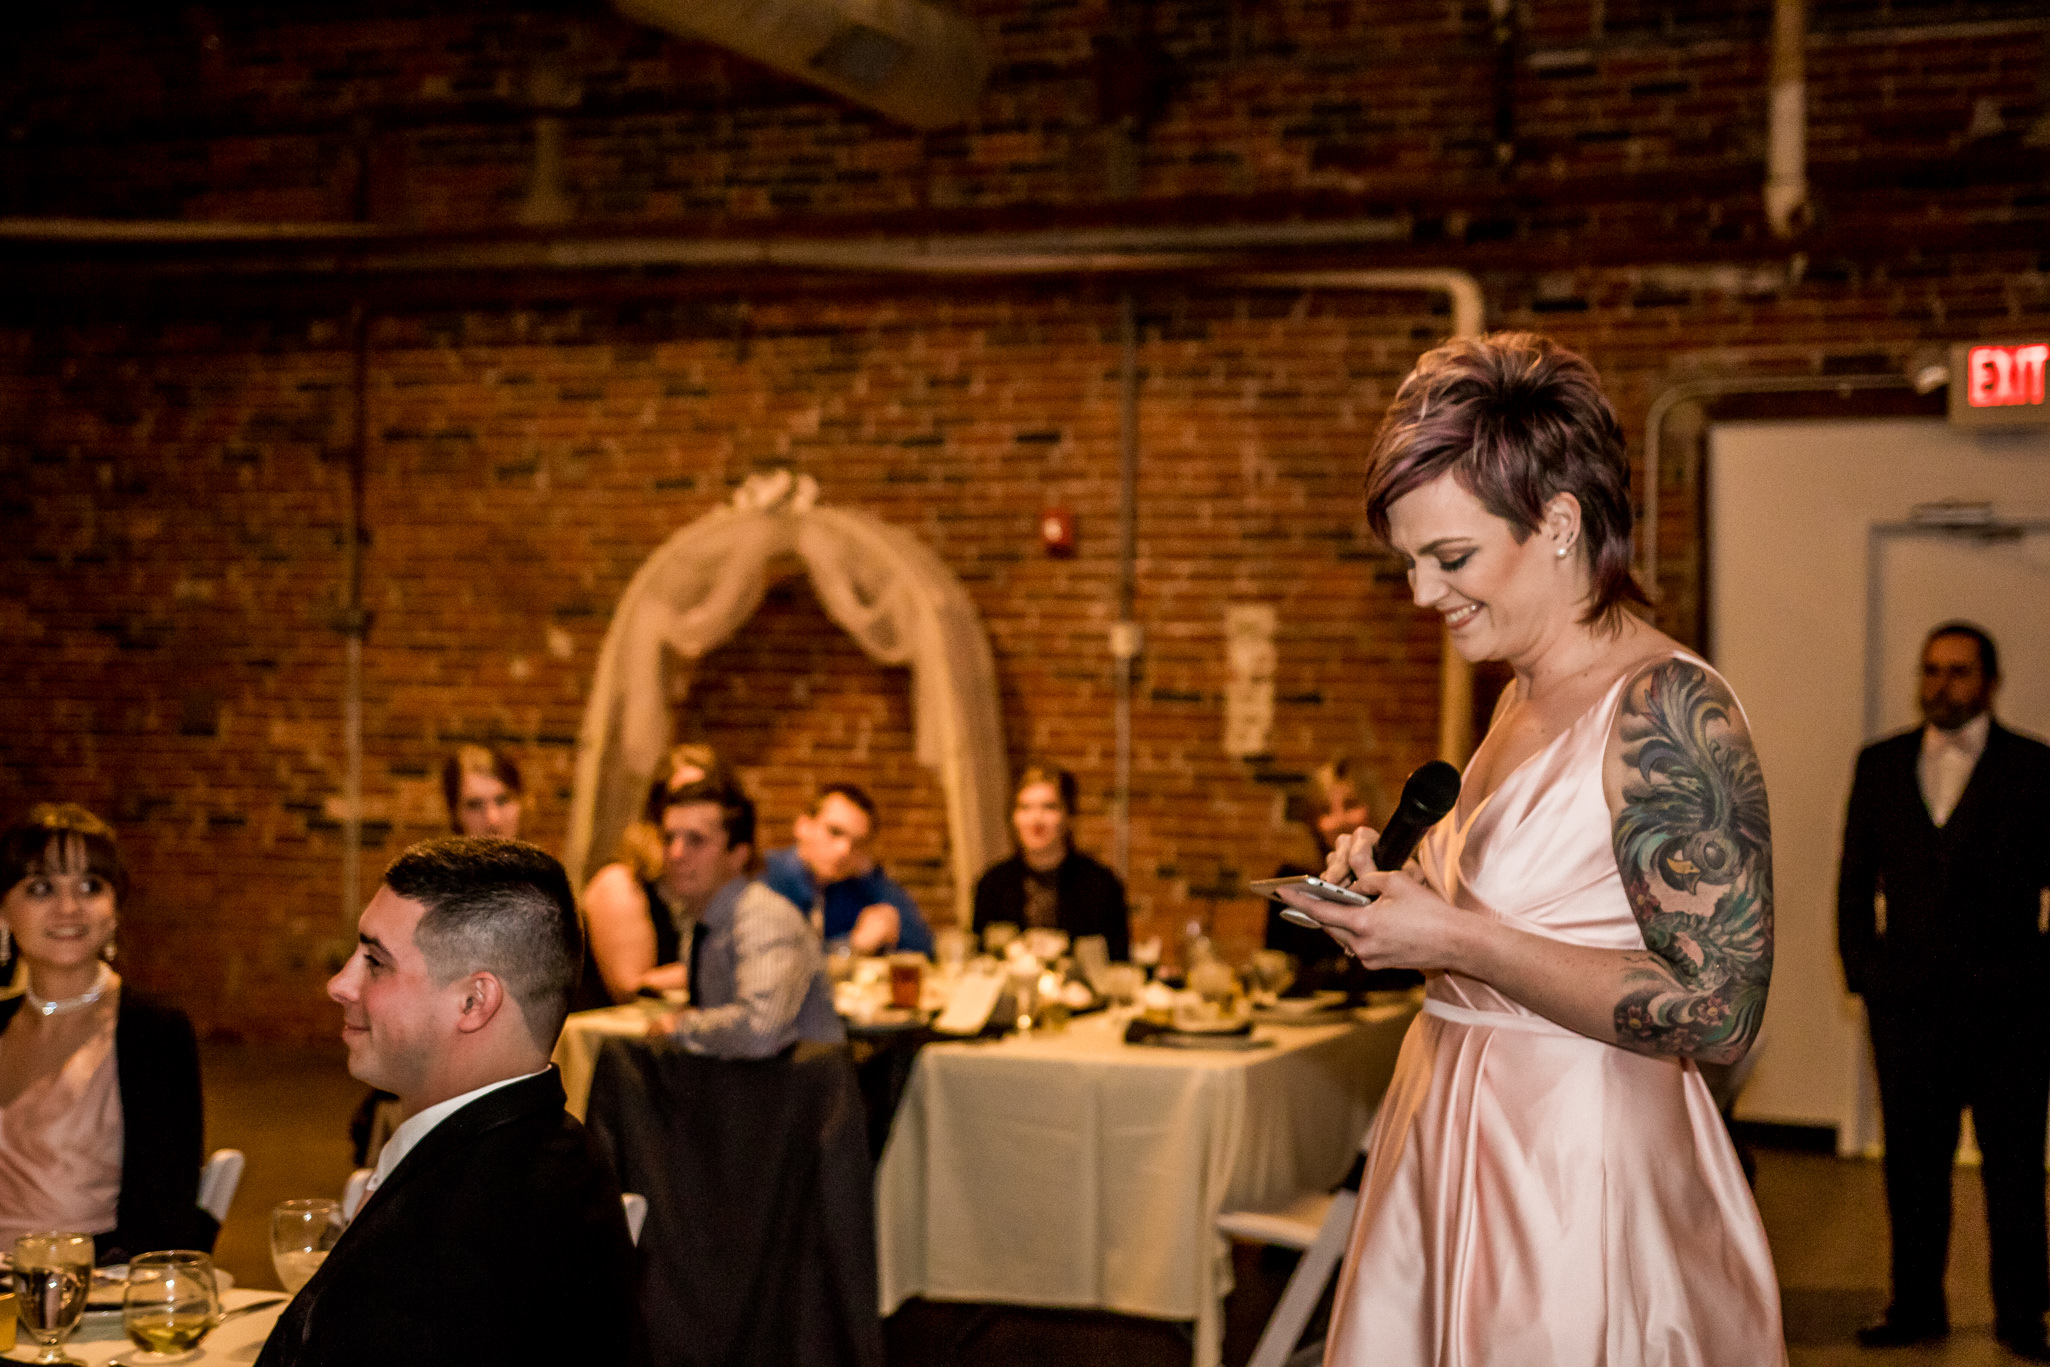 LGBTQ Wedding Columbus OH 3037.JPG